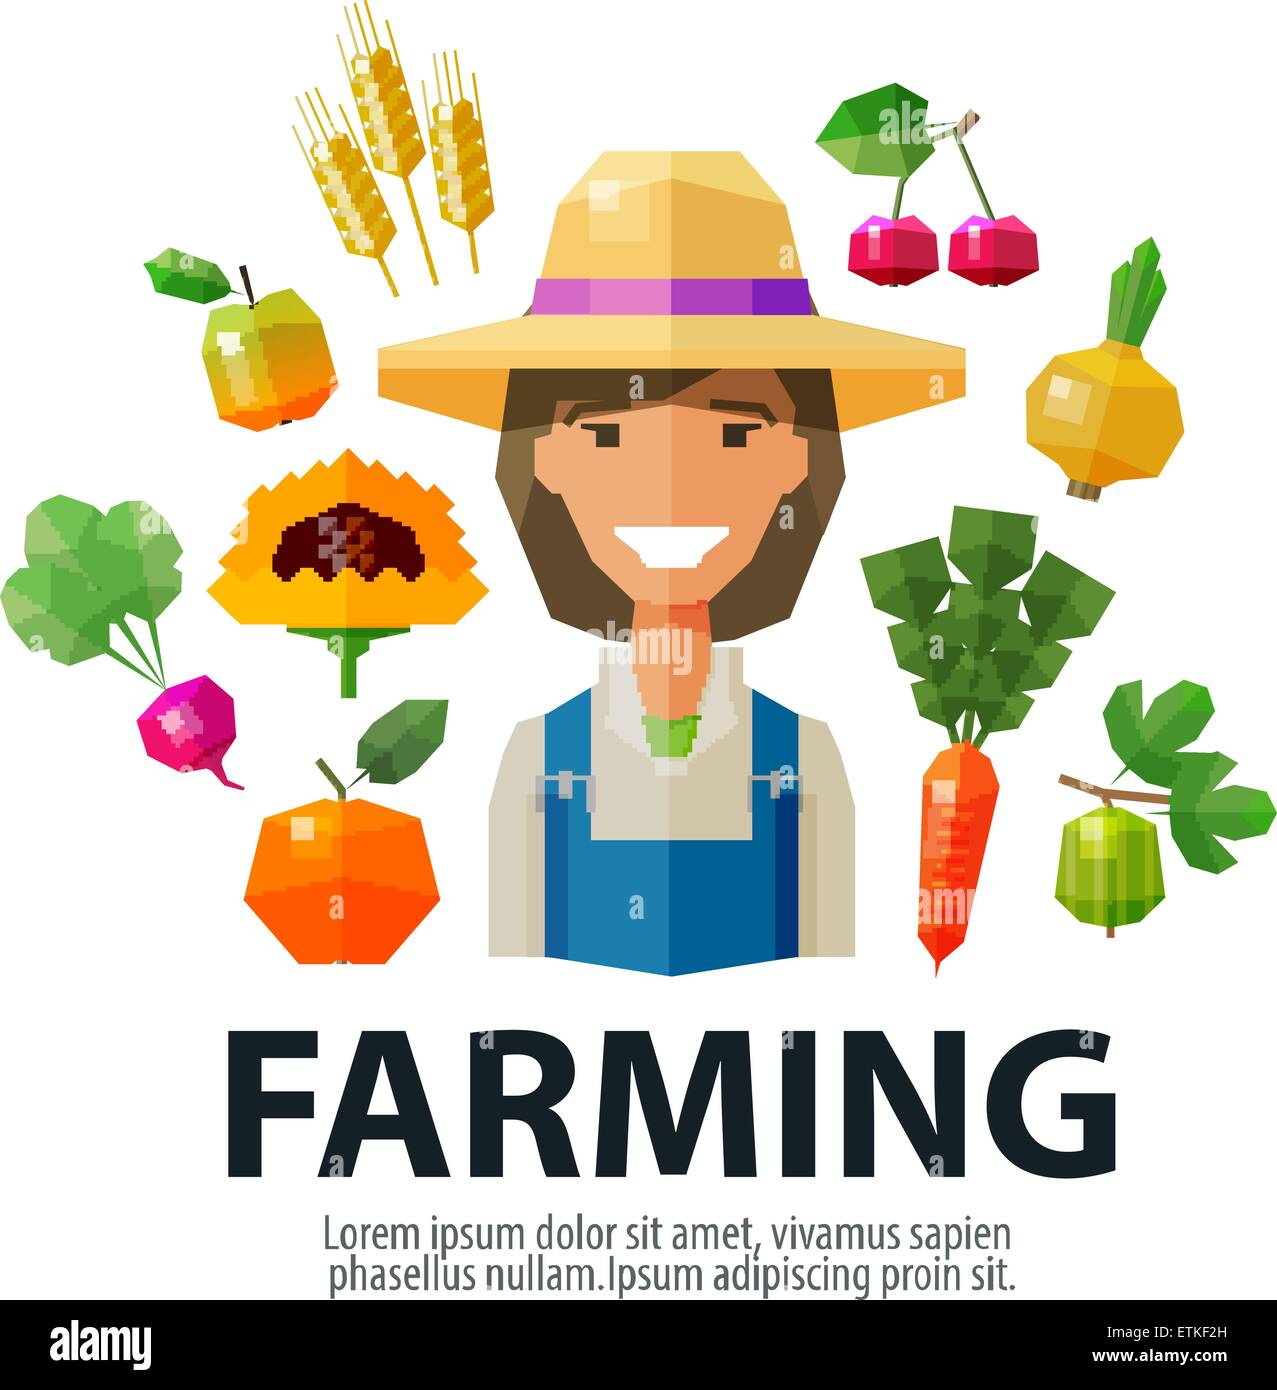 farming, farmer, farm vector logo design template. gardening, horticulture or fresh food icon - Stock Image